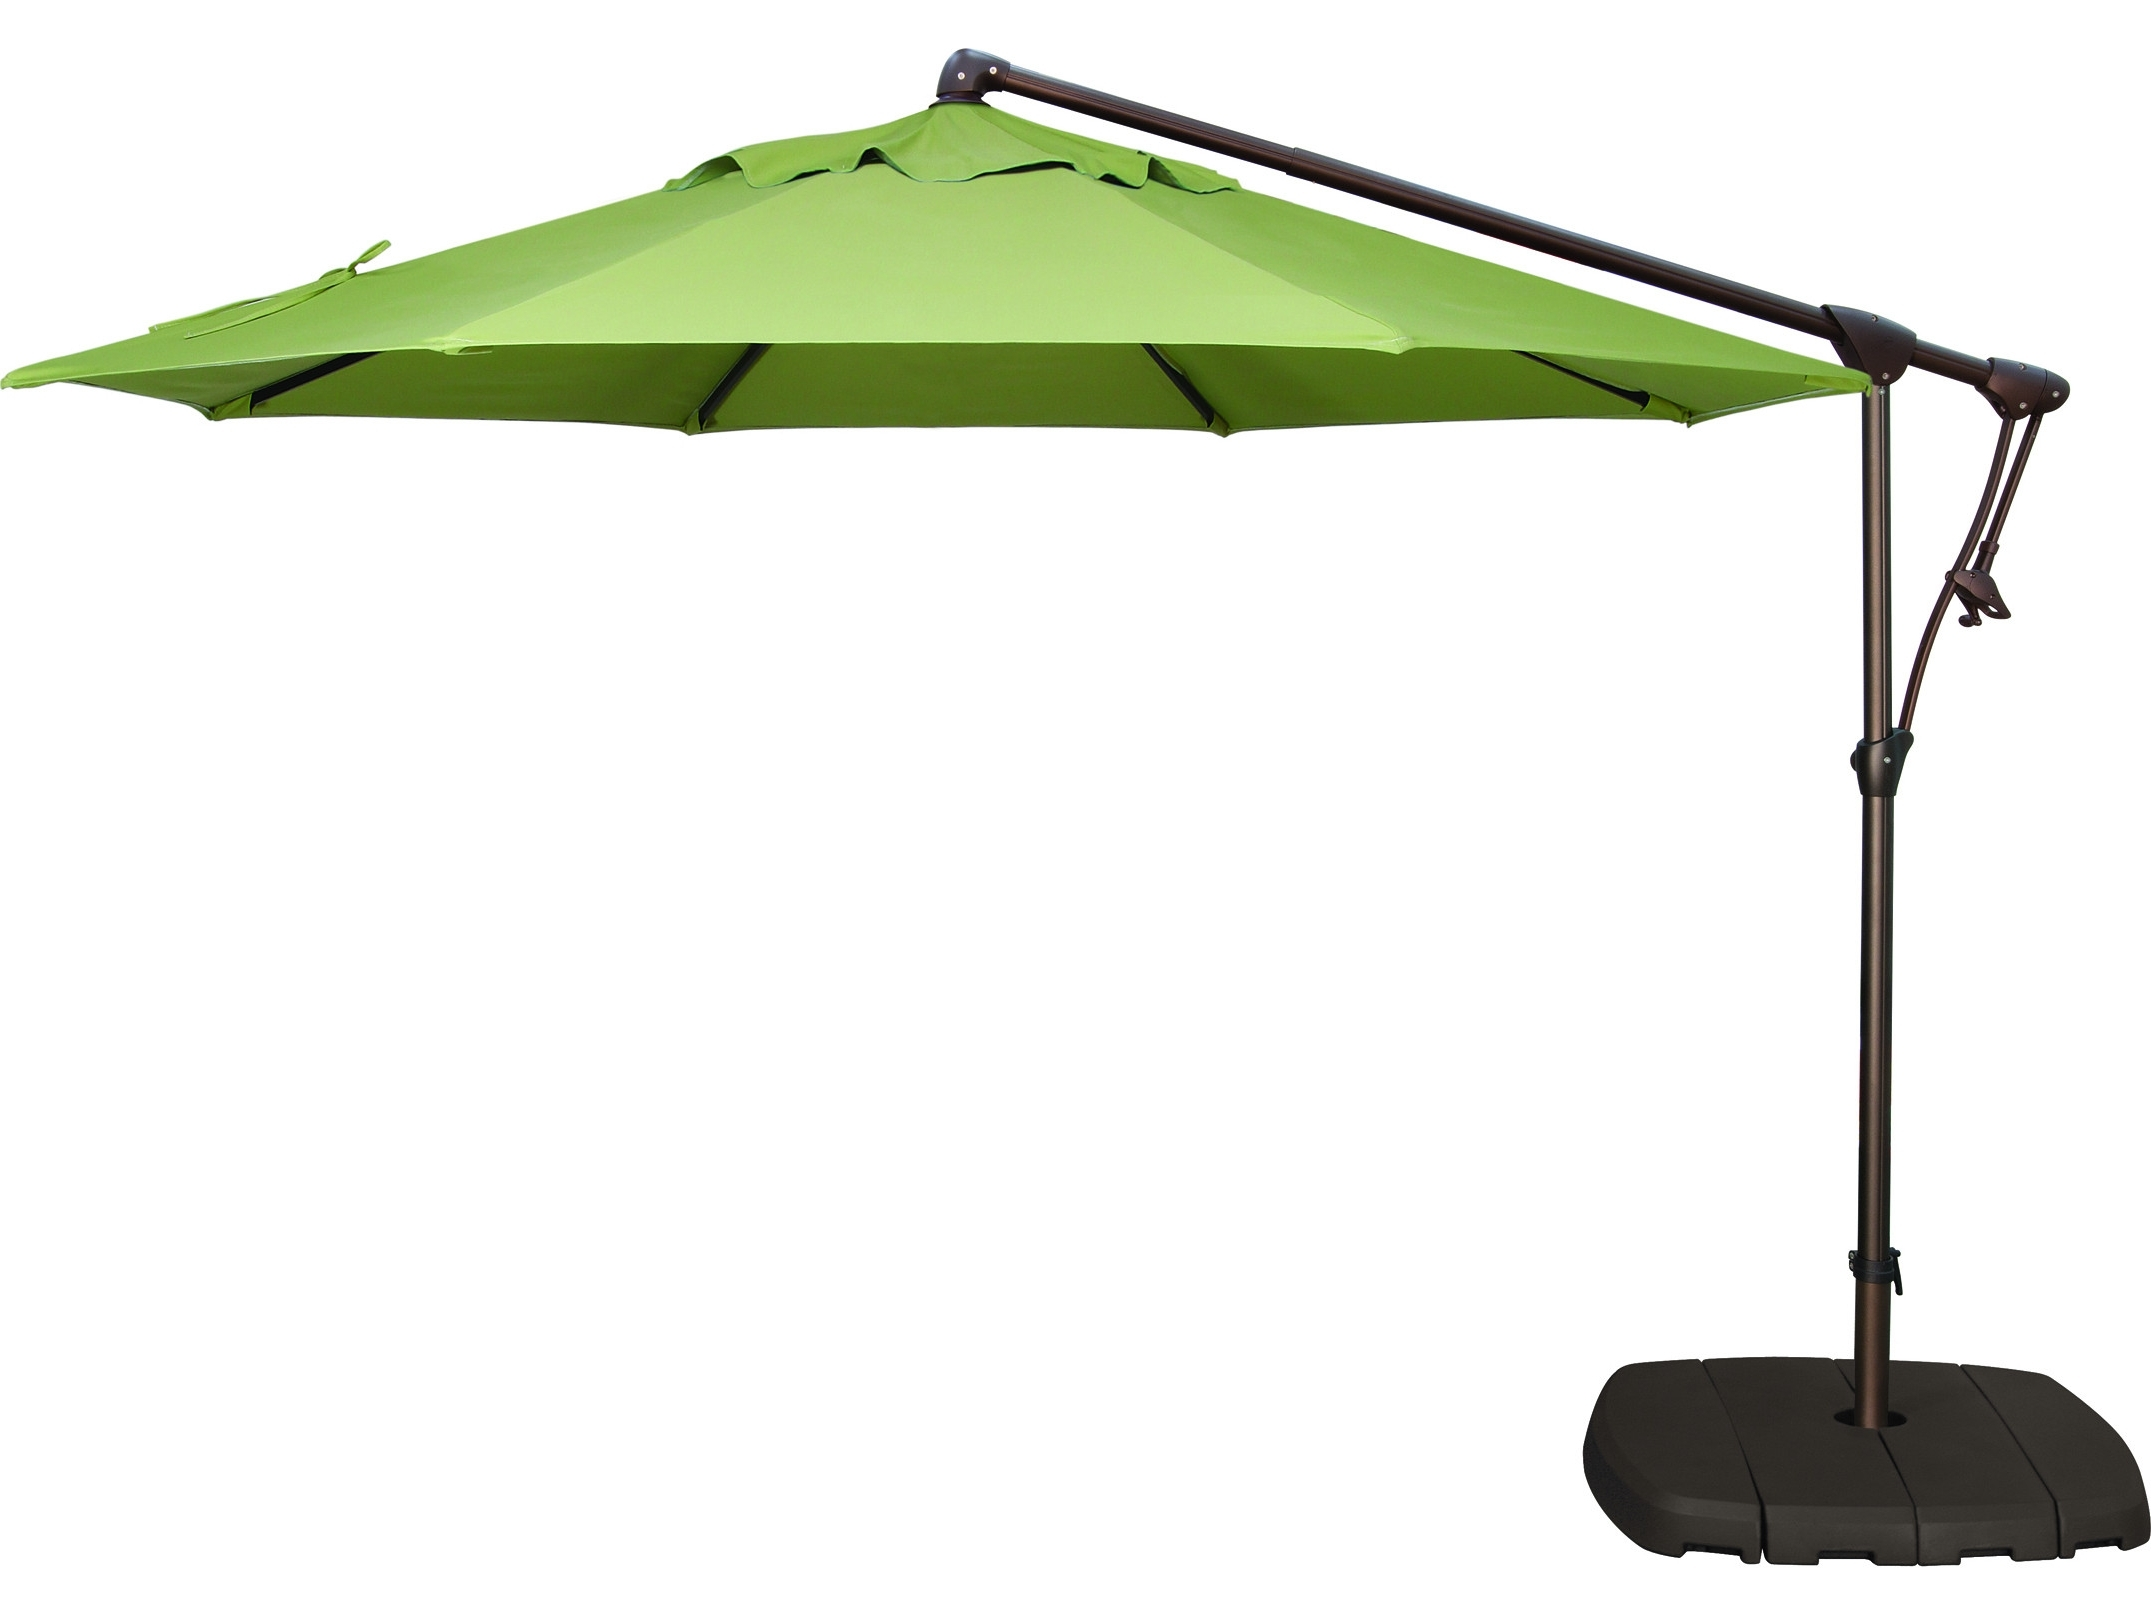 Most Popular Patio Umbrella Base With Wheels Popular Metal Patio Umbrellas With In Patio Umbrellas With Wheels (View 10 of 20)